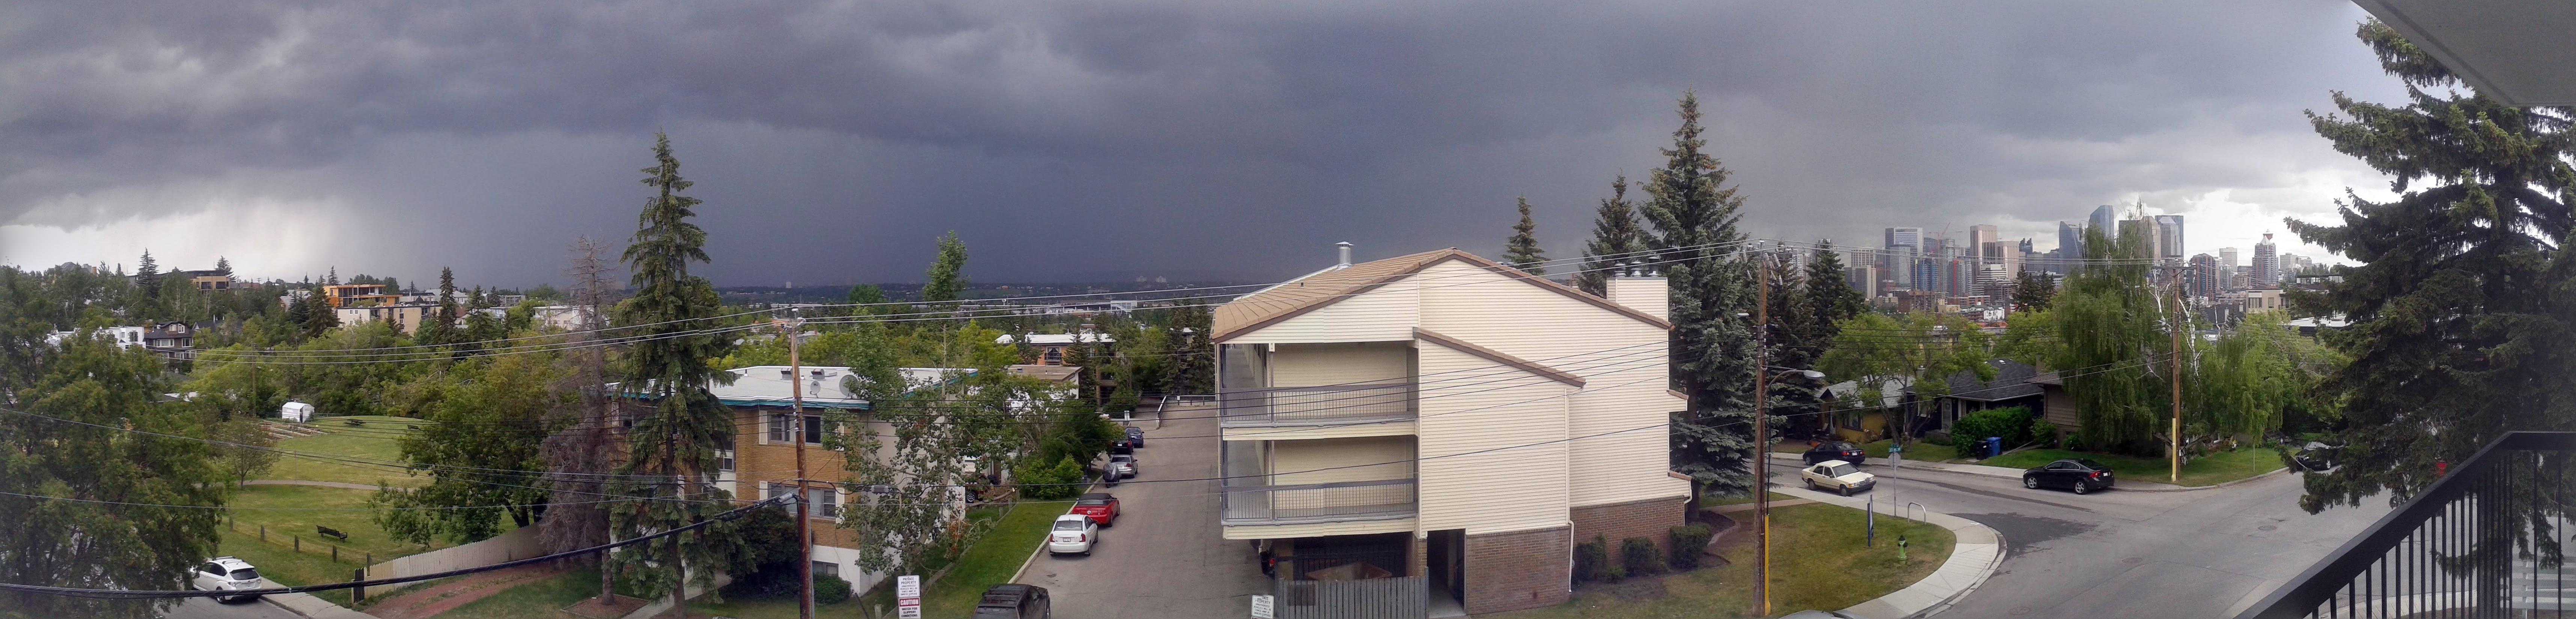 Bankview, Storm, from the balcony